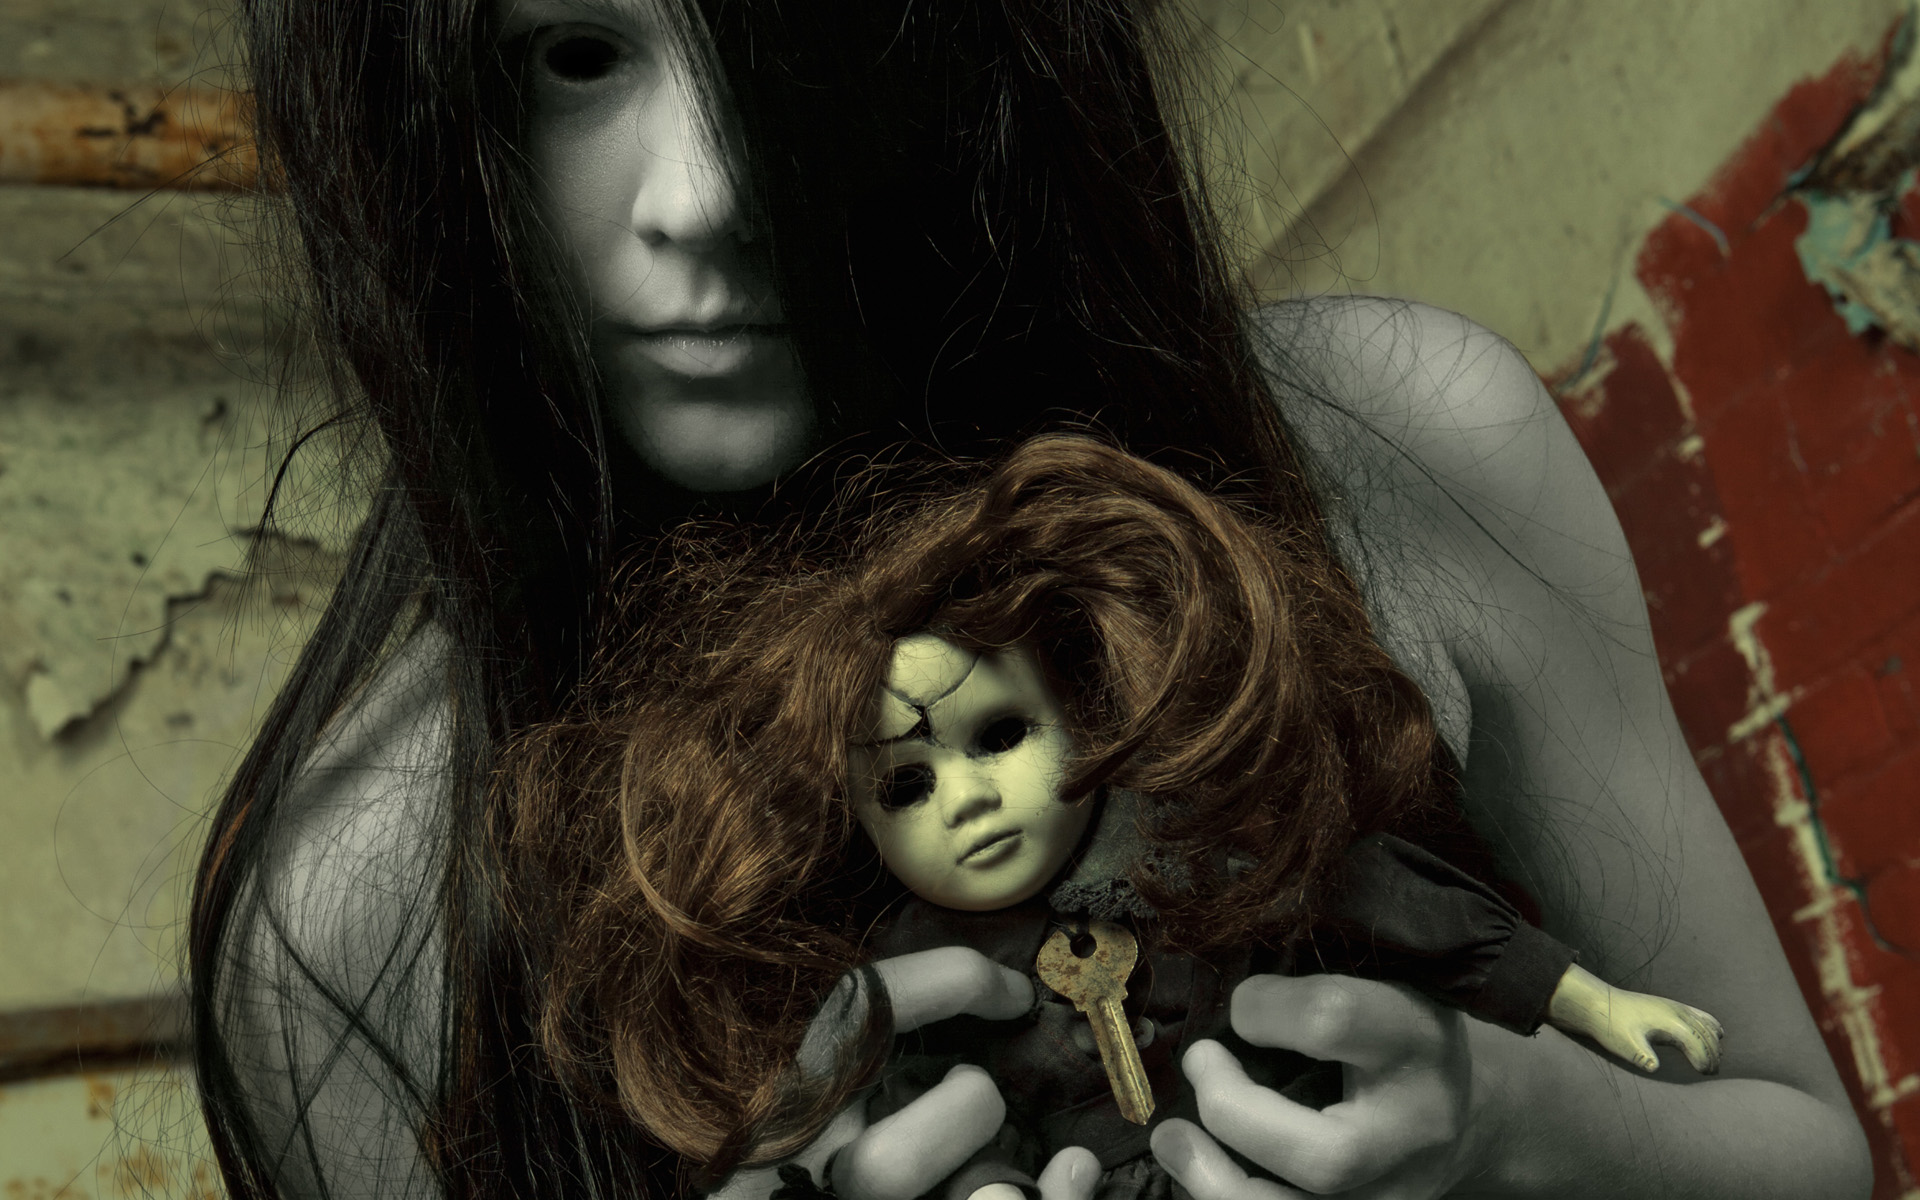 Creepy Ghost Girl Wallpapers HD Wallpapers 1920x1200